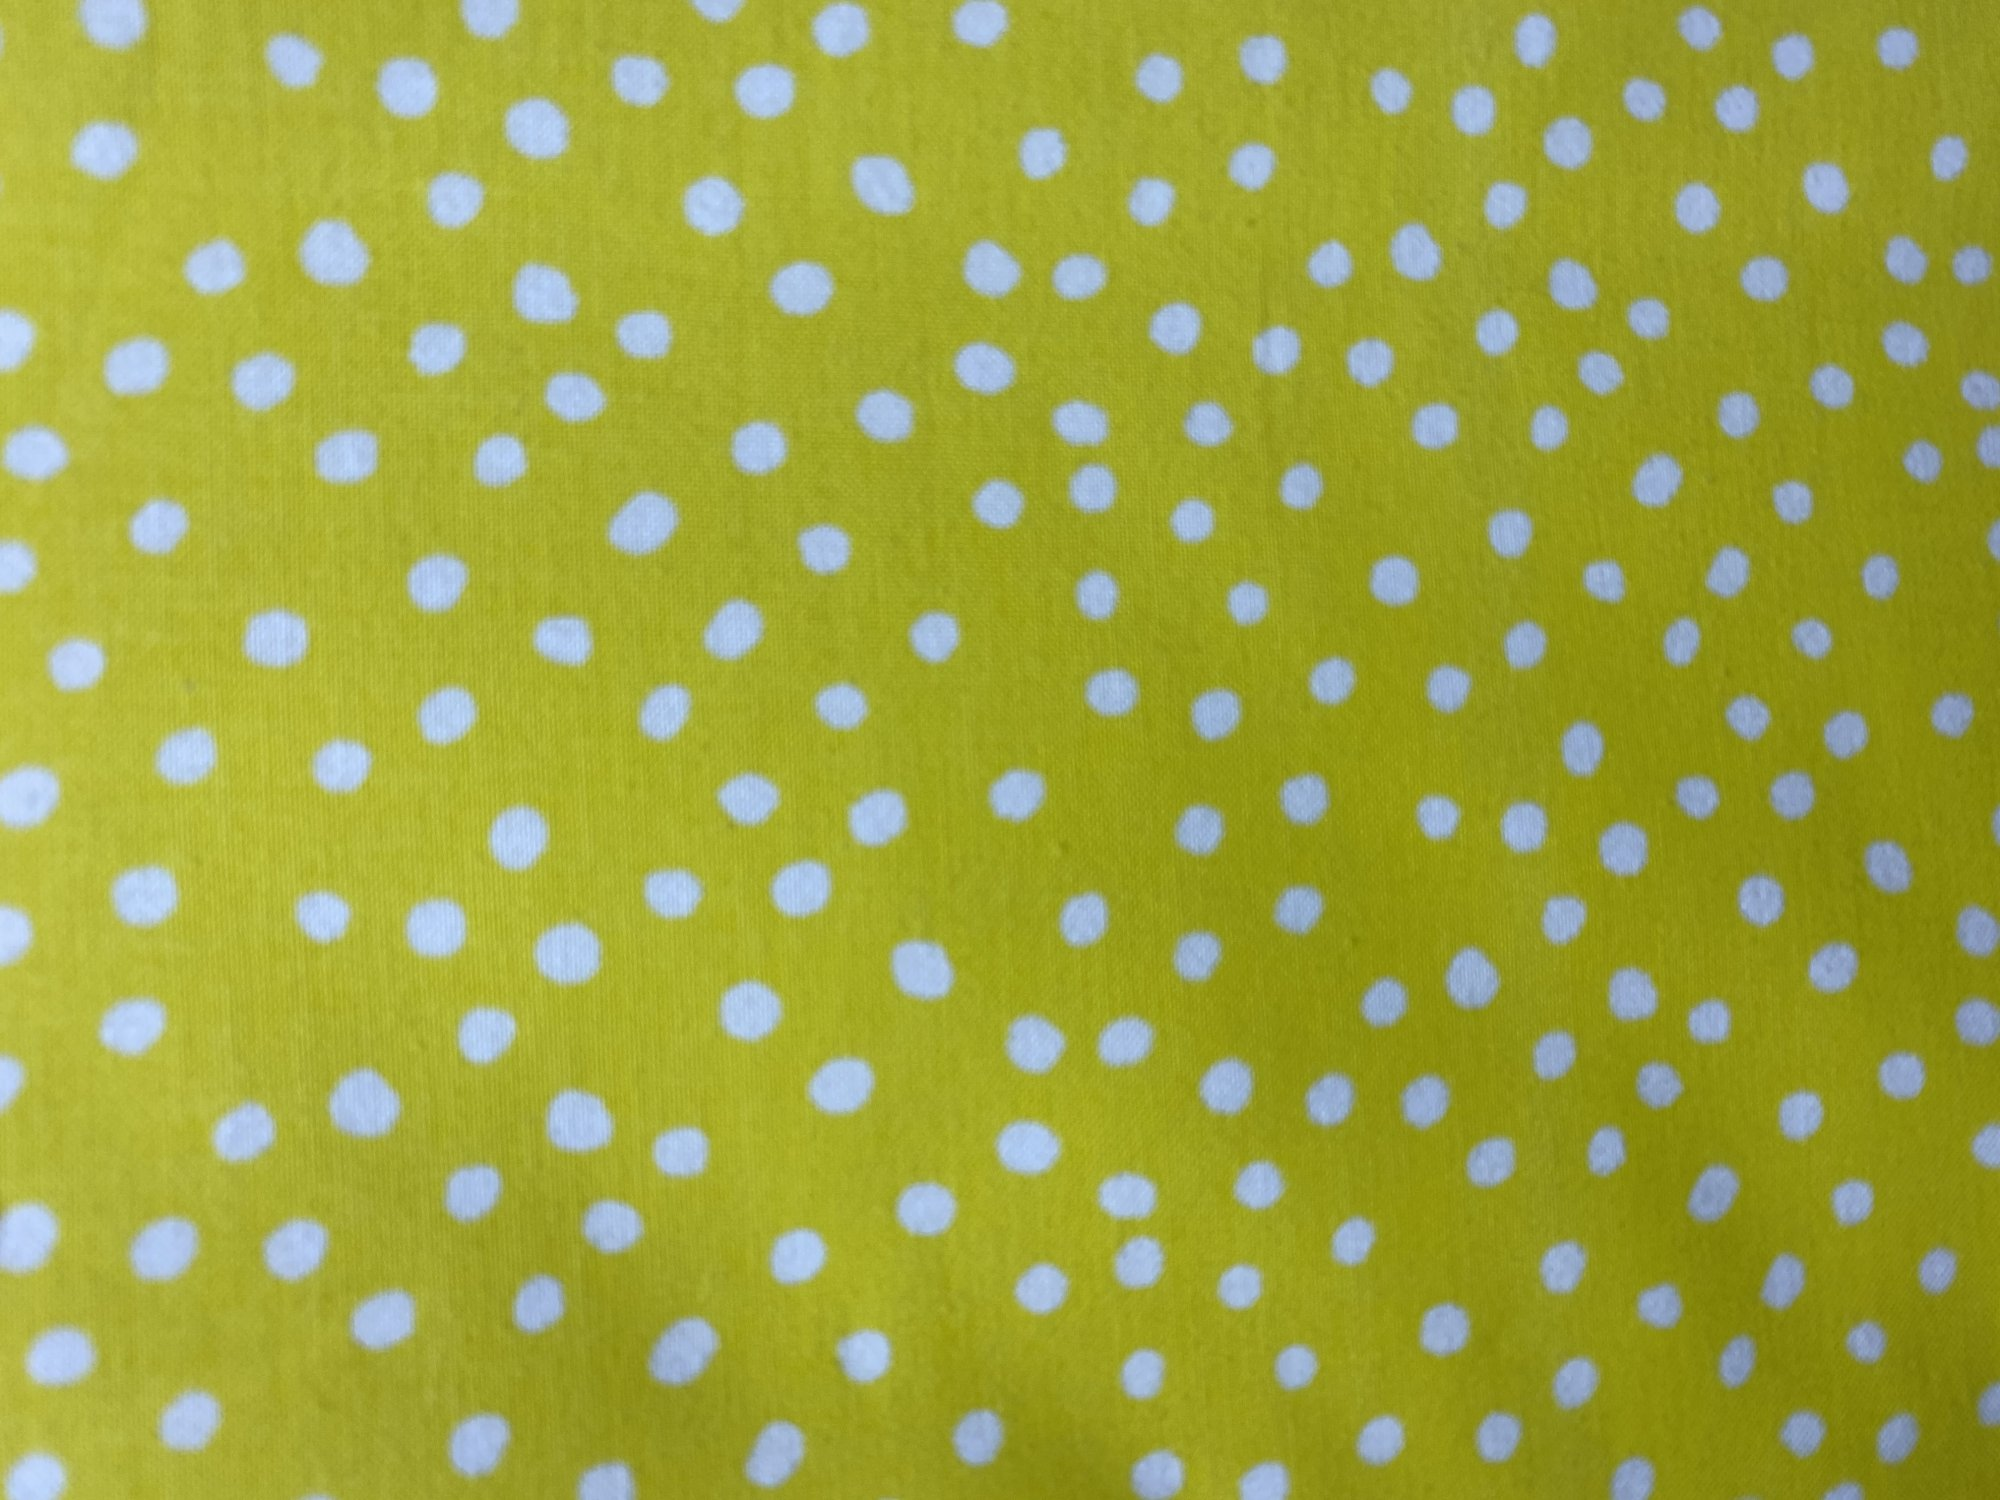 Lots of Dots 29078 09 White on Yellow